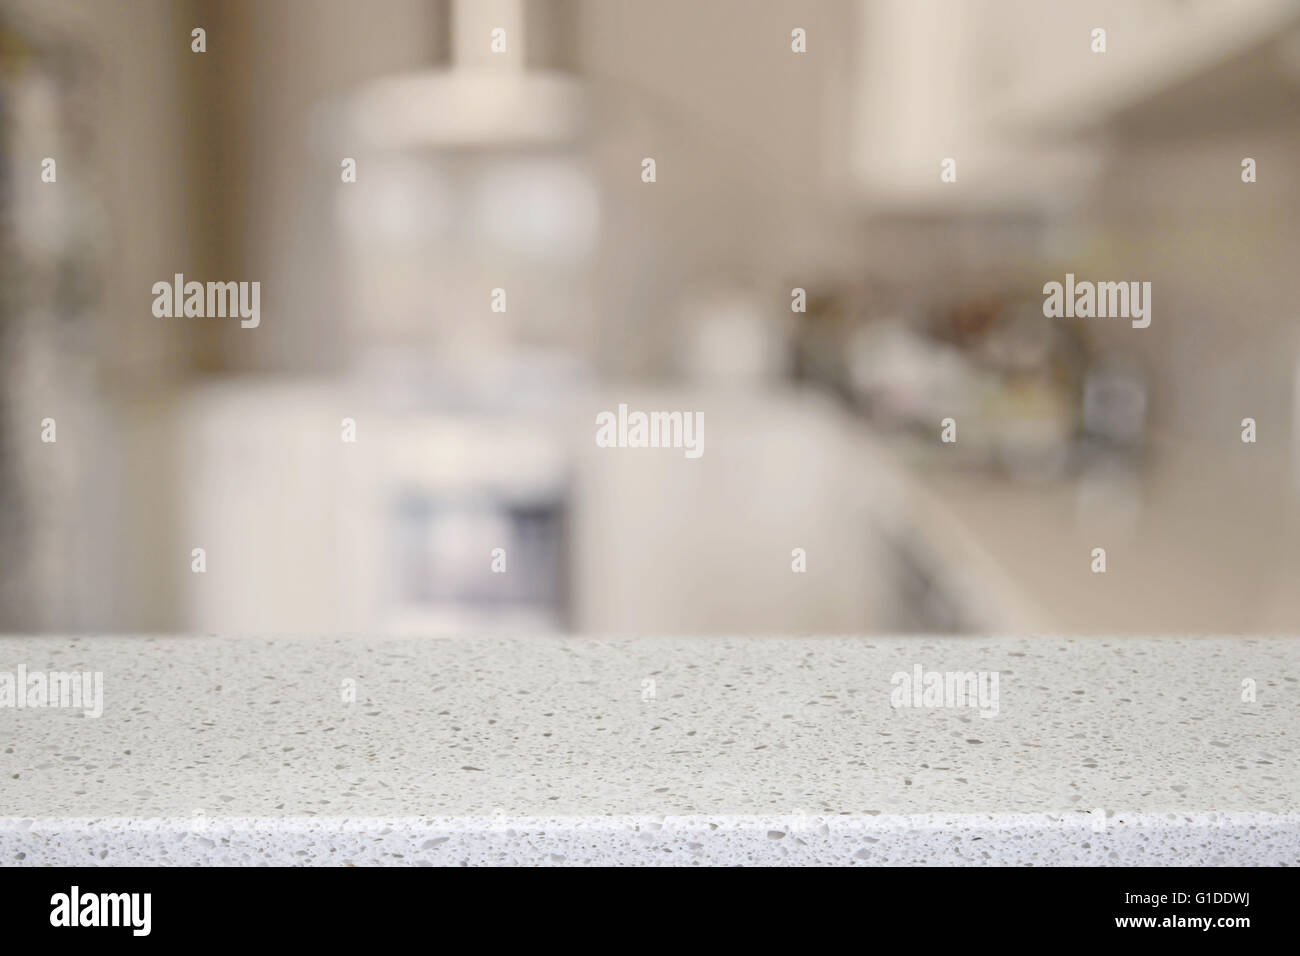 White Quartz Stone Counter Top With Blur Kitchen Background Product